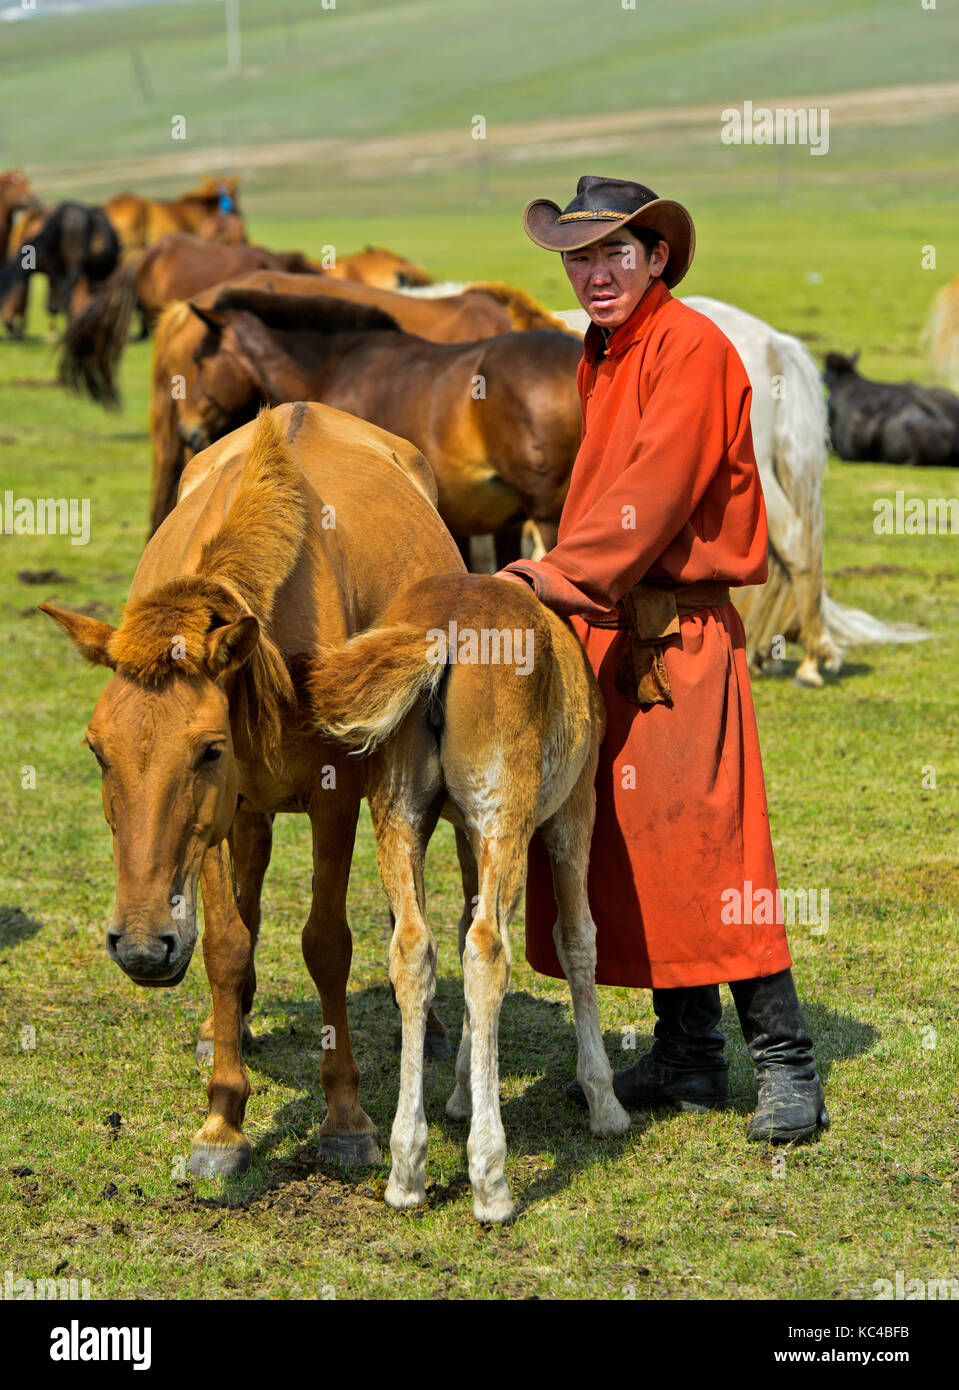 Young man brings foal to a mare to reassure her during milking, Mongolia - Stock Image